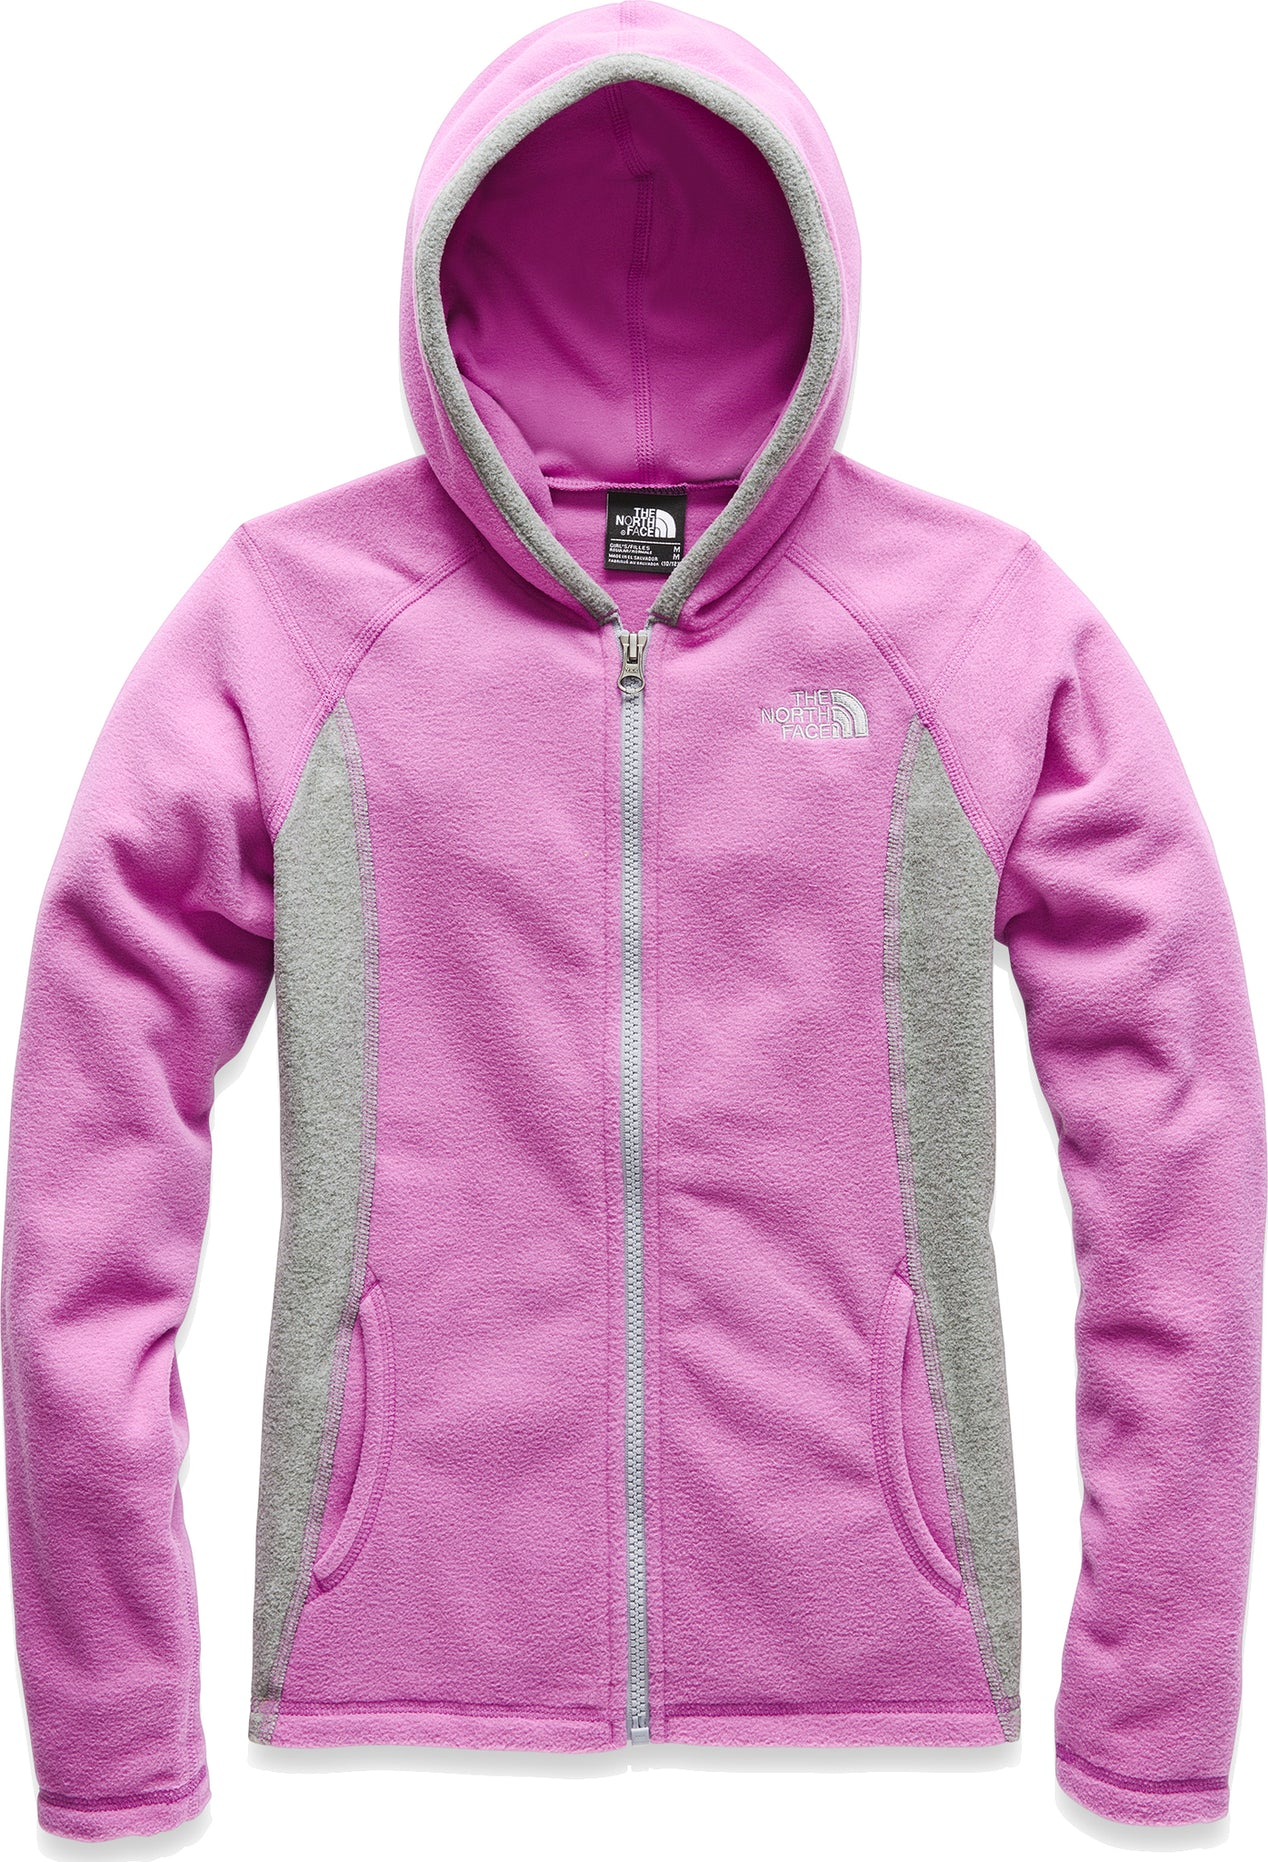 be496f0e6cd0f The North Face Glacier Full Zip Hoodie - Girls | Altitude Sports